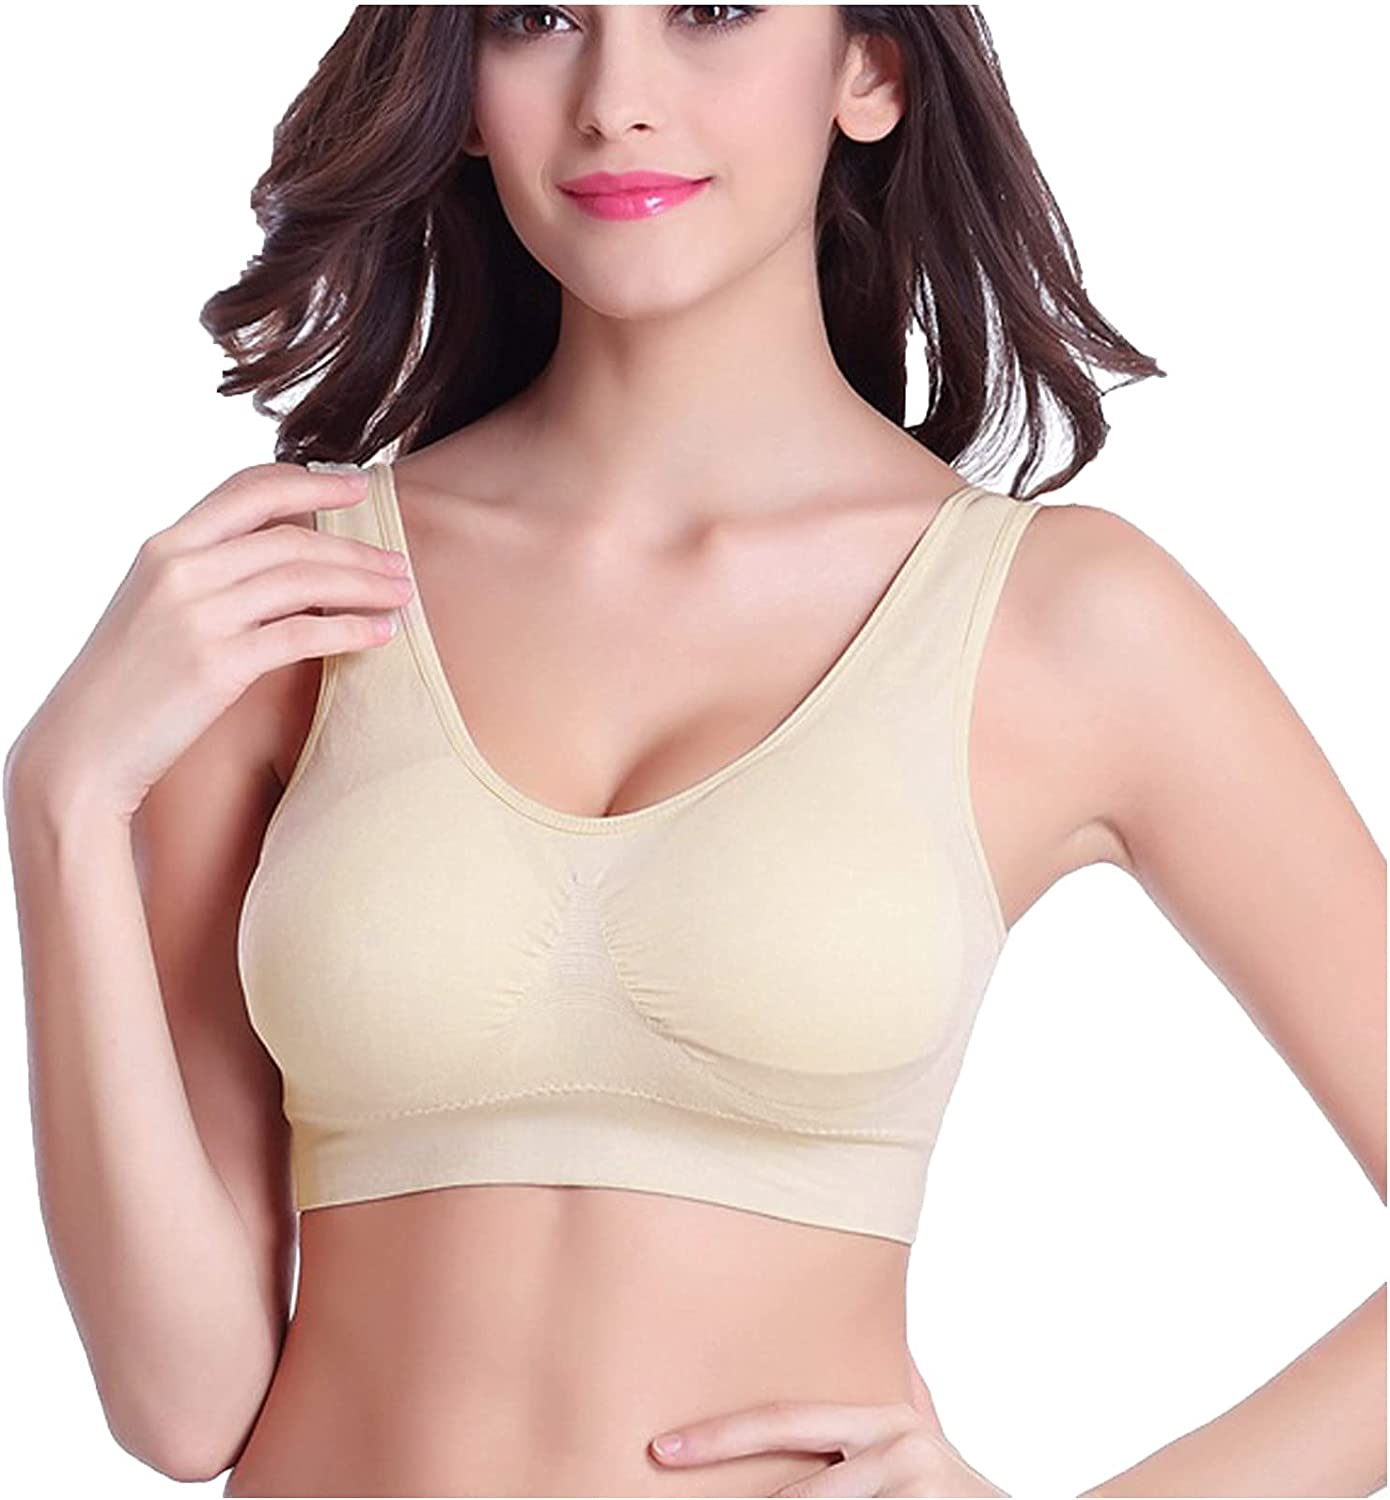 Sinzelimin 3-Pack Sport Bra for Womens Underwear Seamless Full Cup Push Up Sports Bra Wirefree Yoga Bra with Removable Pads